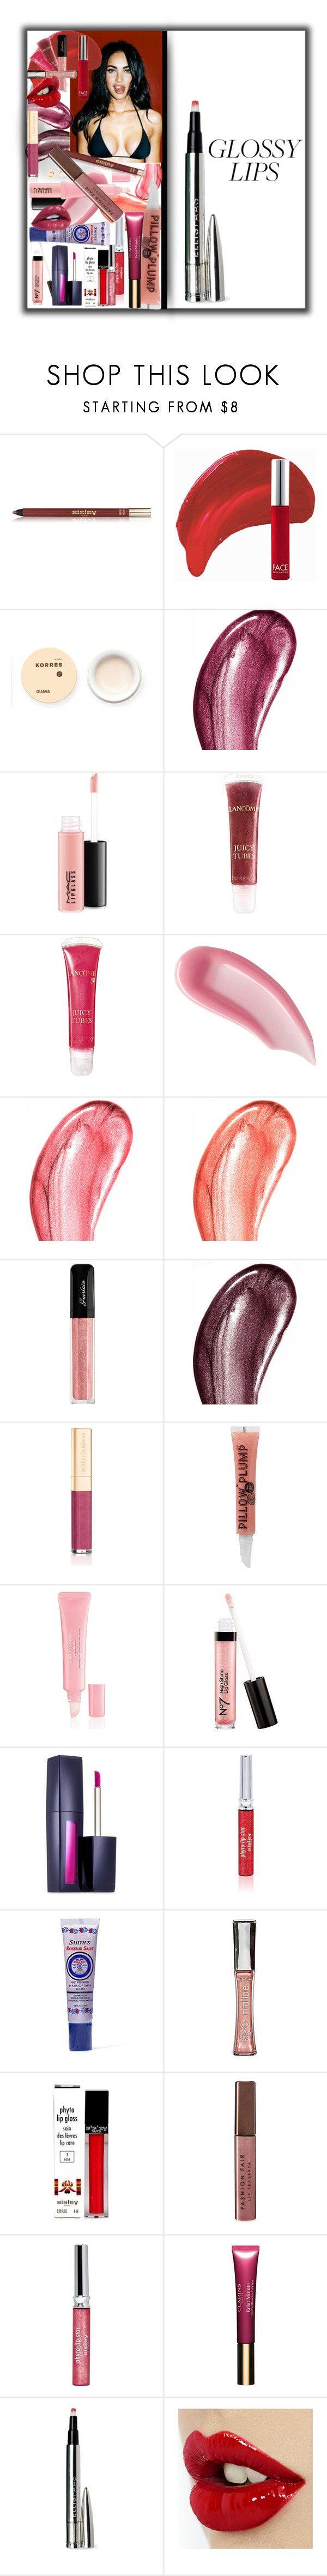 """Glossy Lips"" by alrdesign ❤ liked on Polyvore featuring beauty, Sisley, FACE Stockholm, Korres, Dolce&Gabbana, MAC Cosmetics, Lancôme, Smith & Cult, Chantecaille and Guerlain"